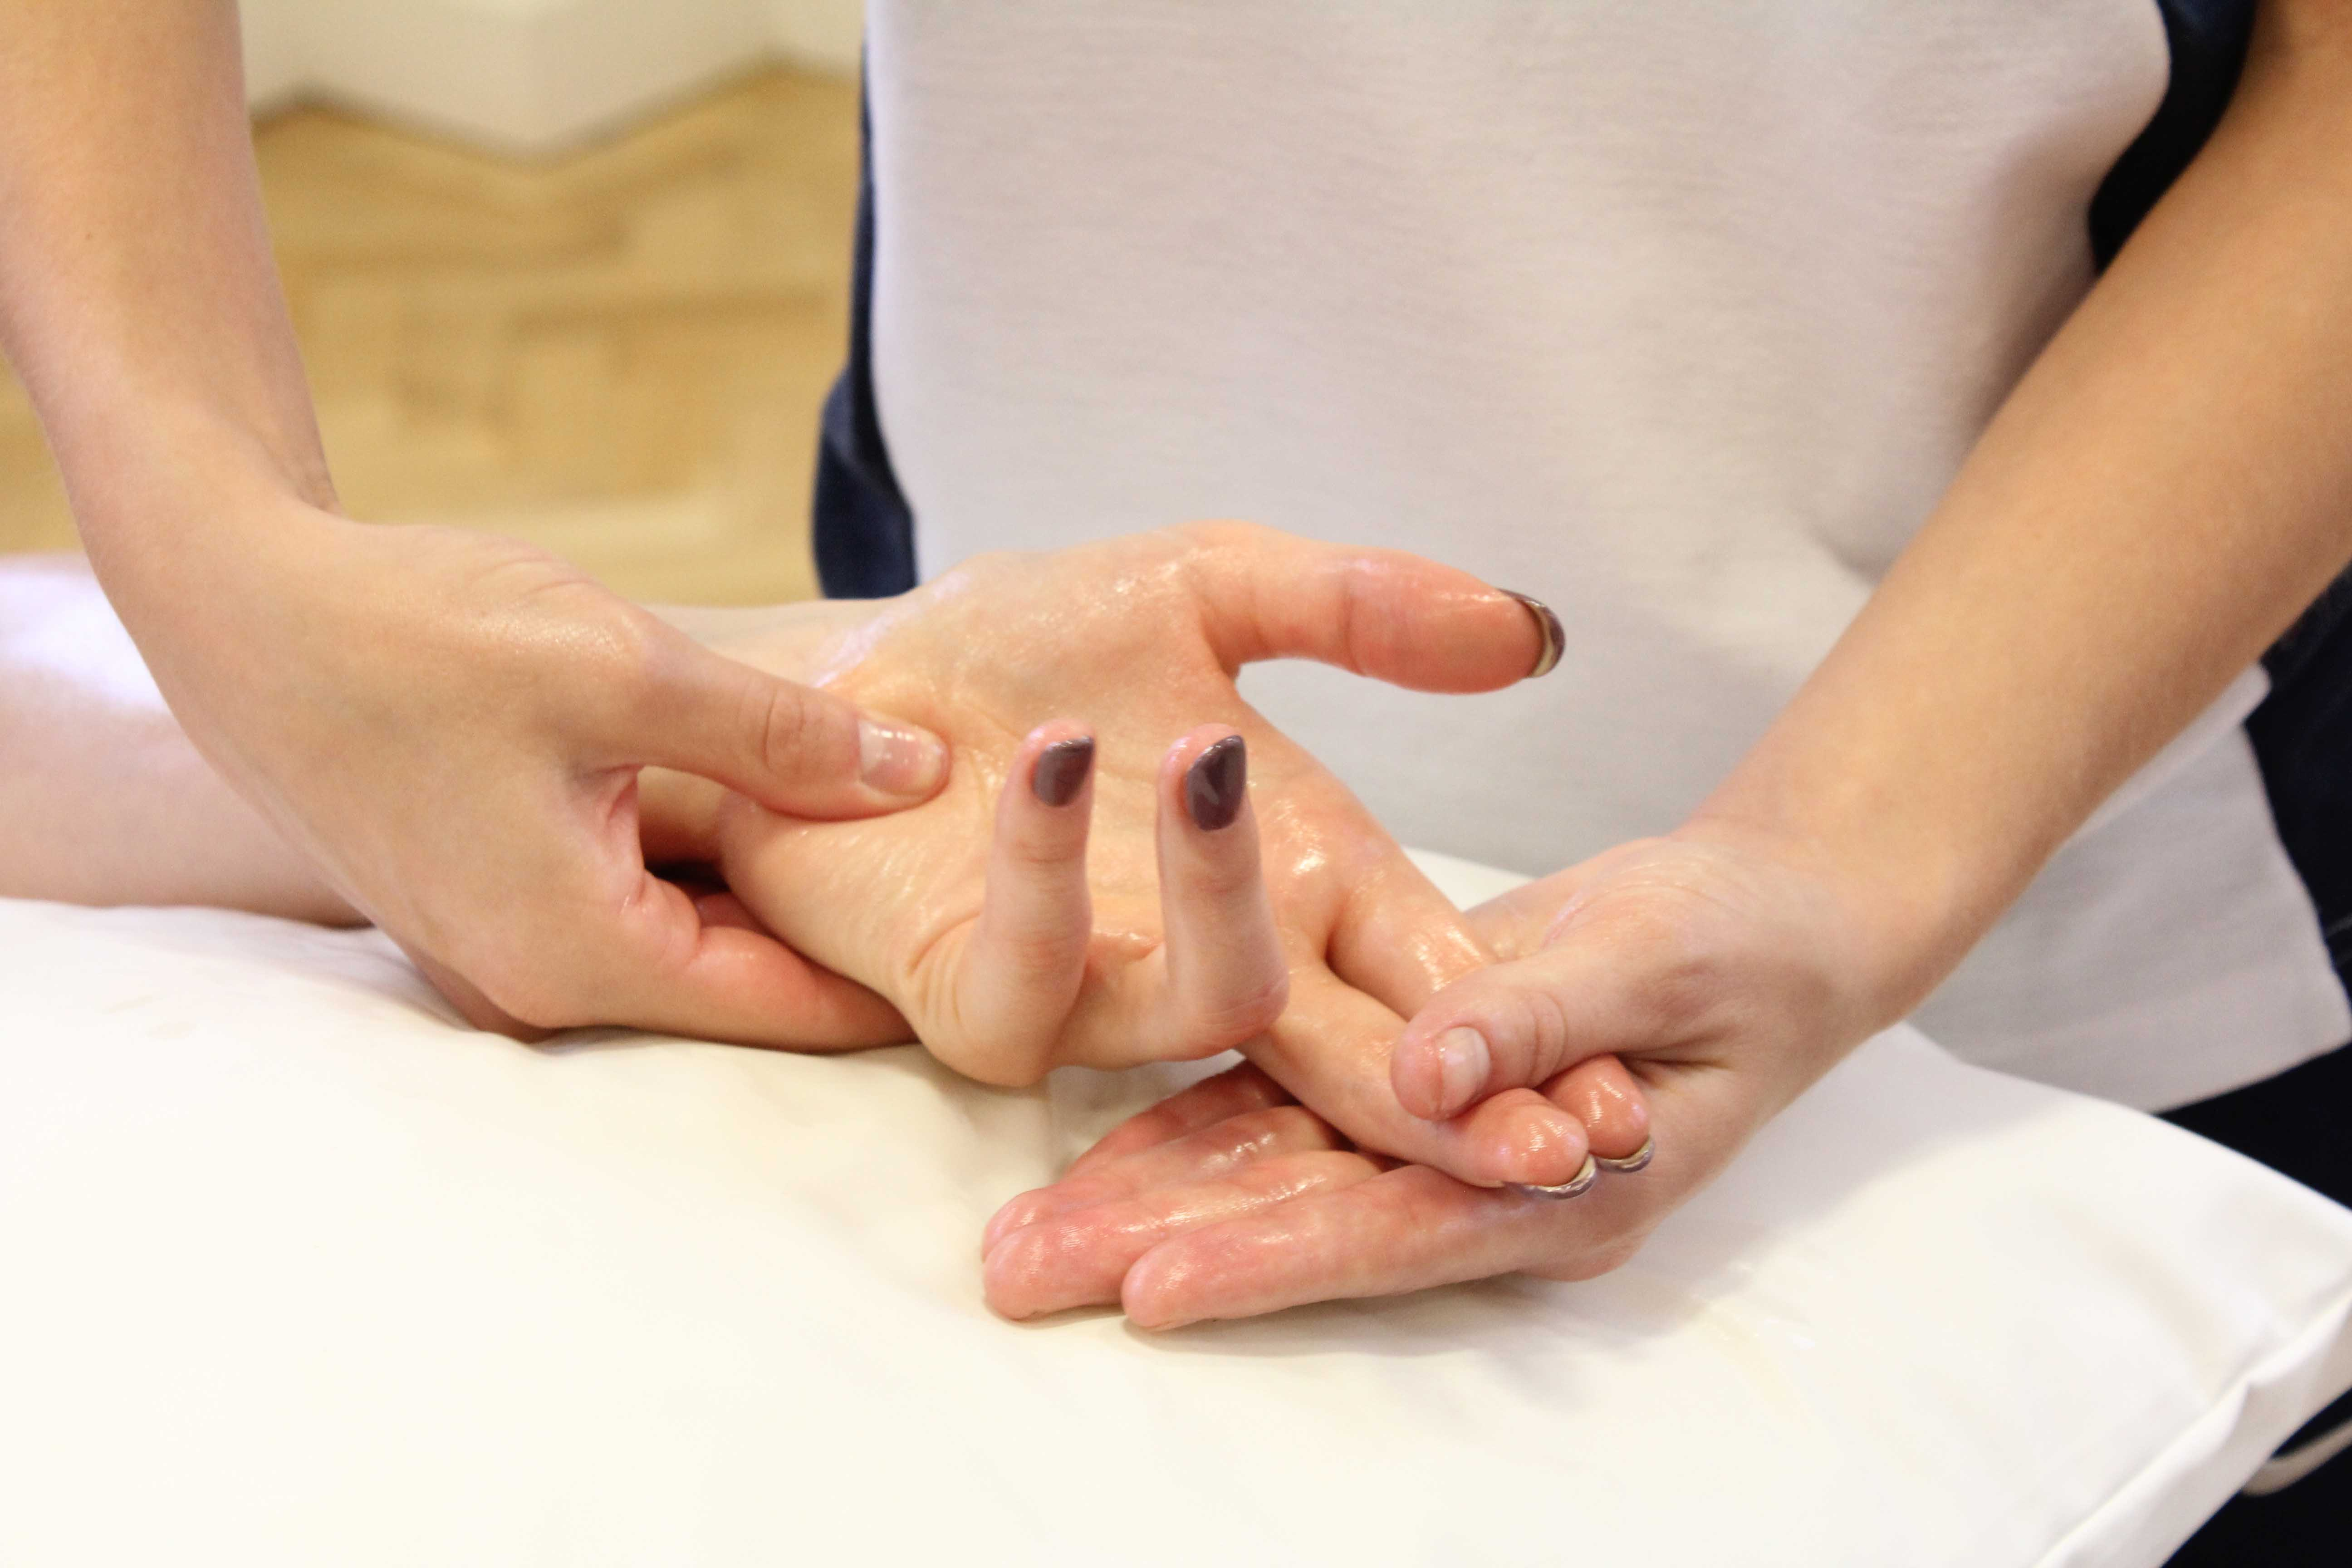 Soft tissue massage and mobilisations of the hands and fingers to alleviate pain and stiffness